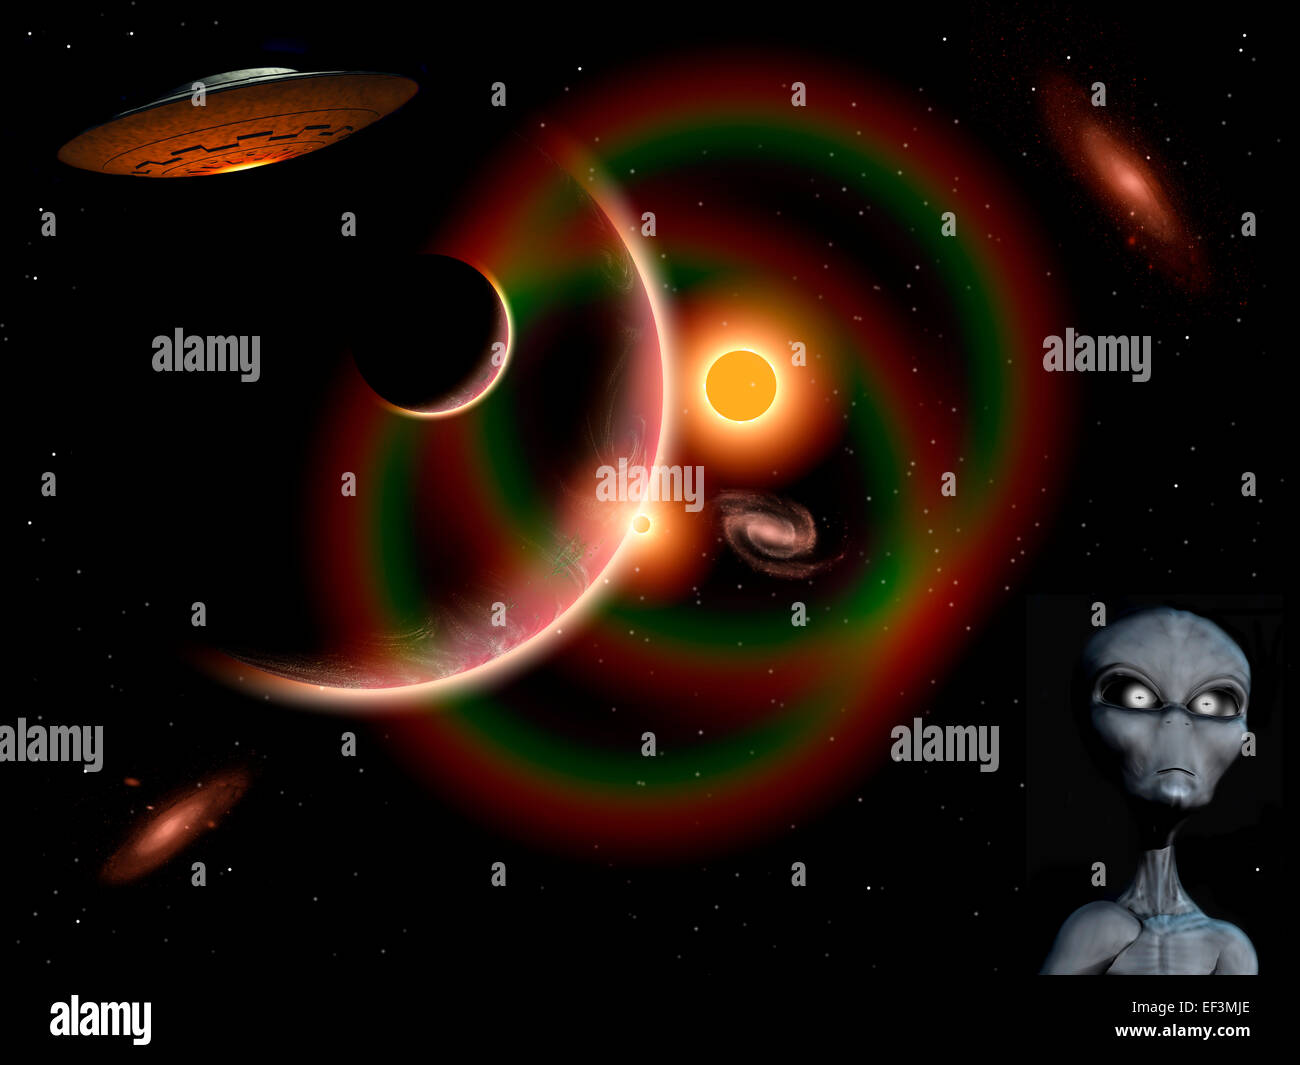 Grey Aliens From The Zeta Reticuli Star System Stock Photo: 78143366